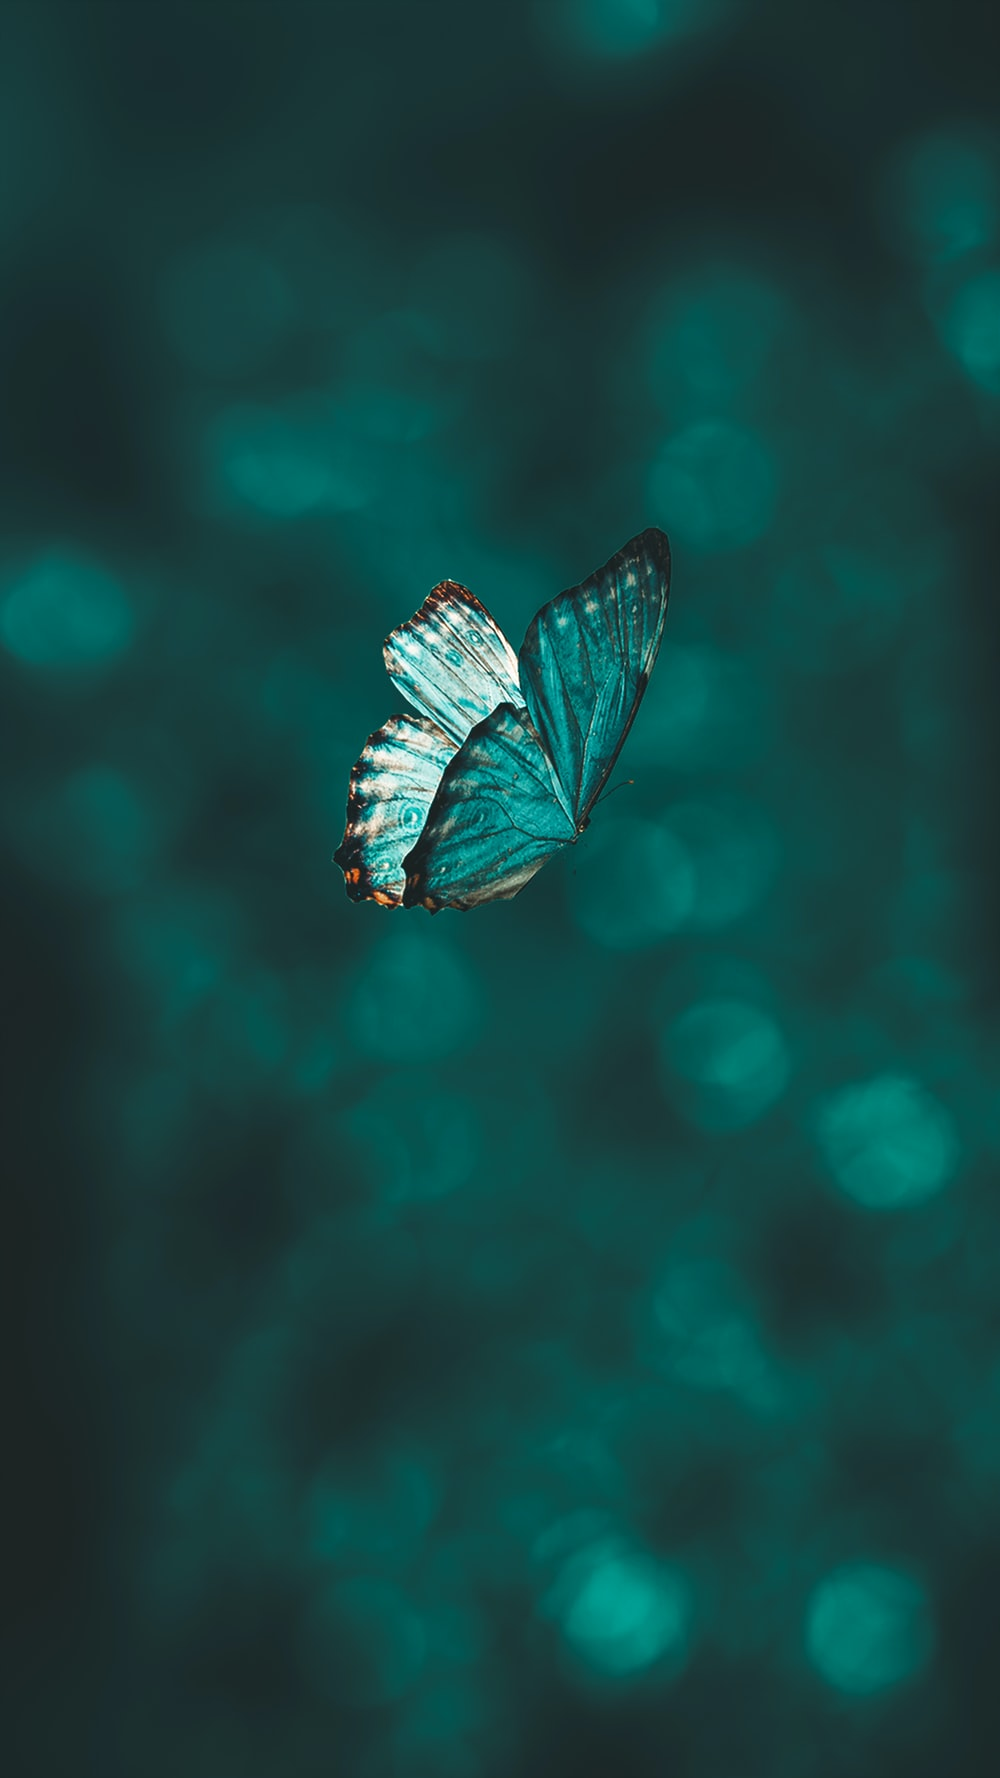 blue and black butterfly in close up photography